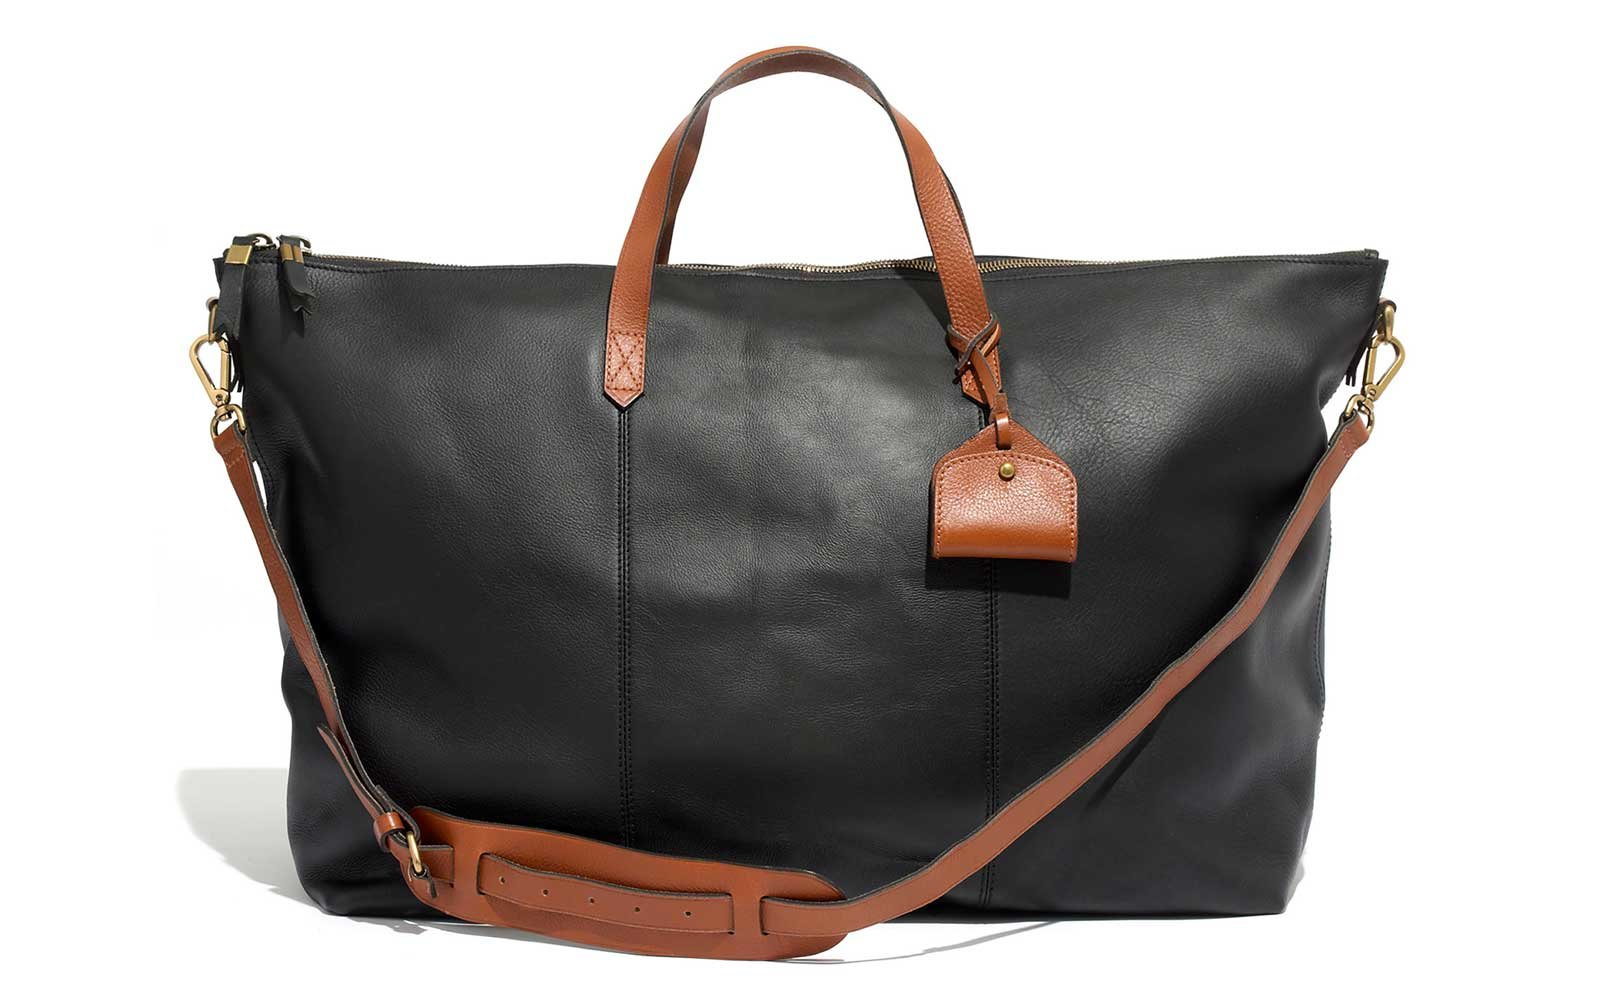 Madewell Leather Duffel for Travel